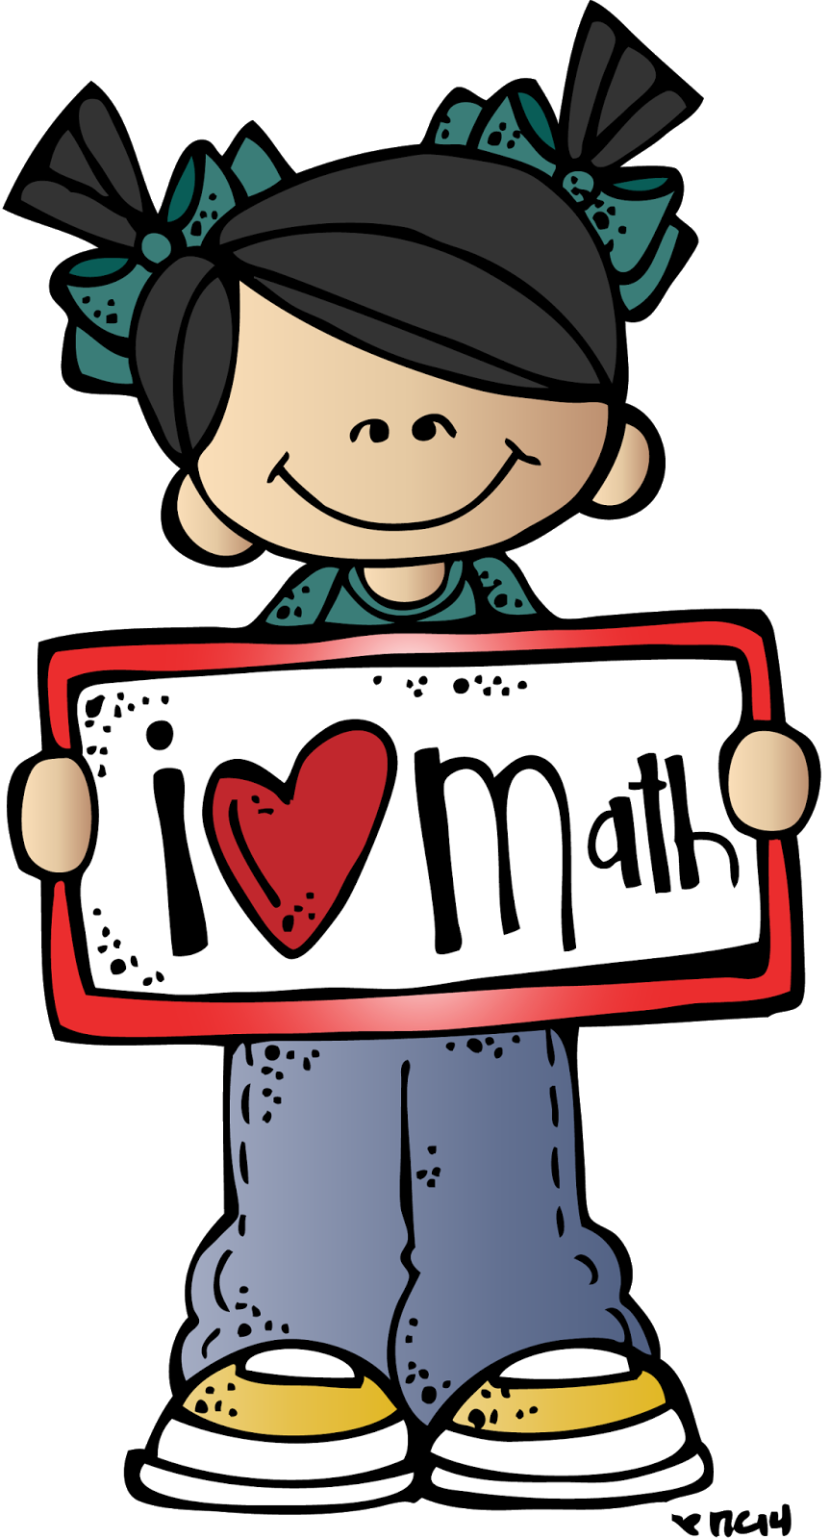 Cute math book clipart images. I love pencils desgine